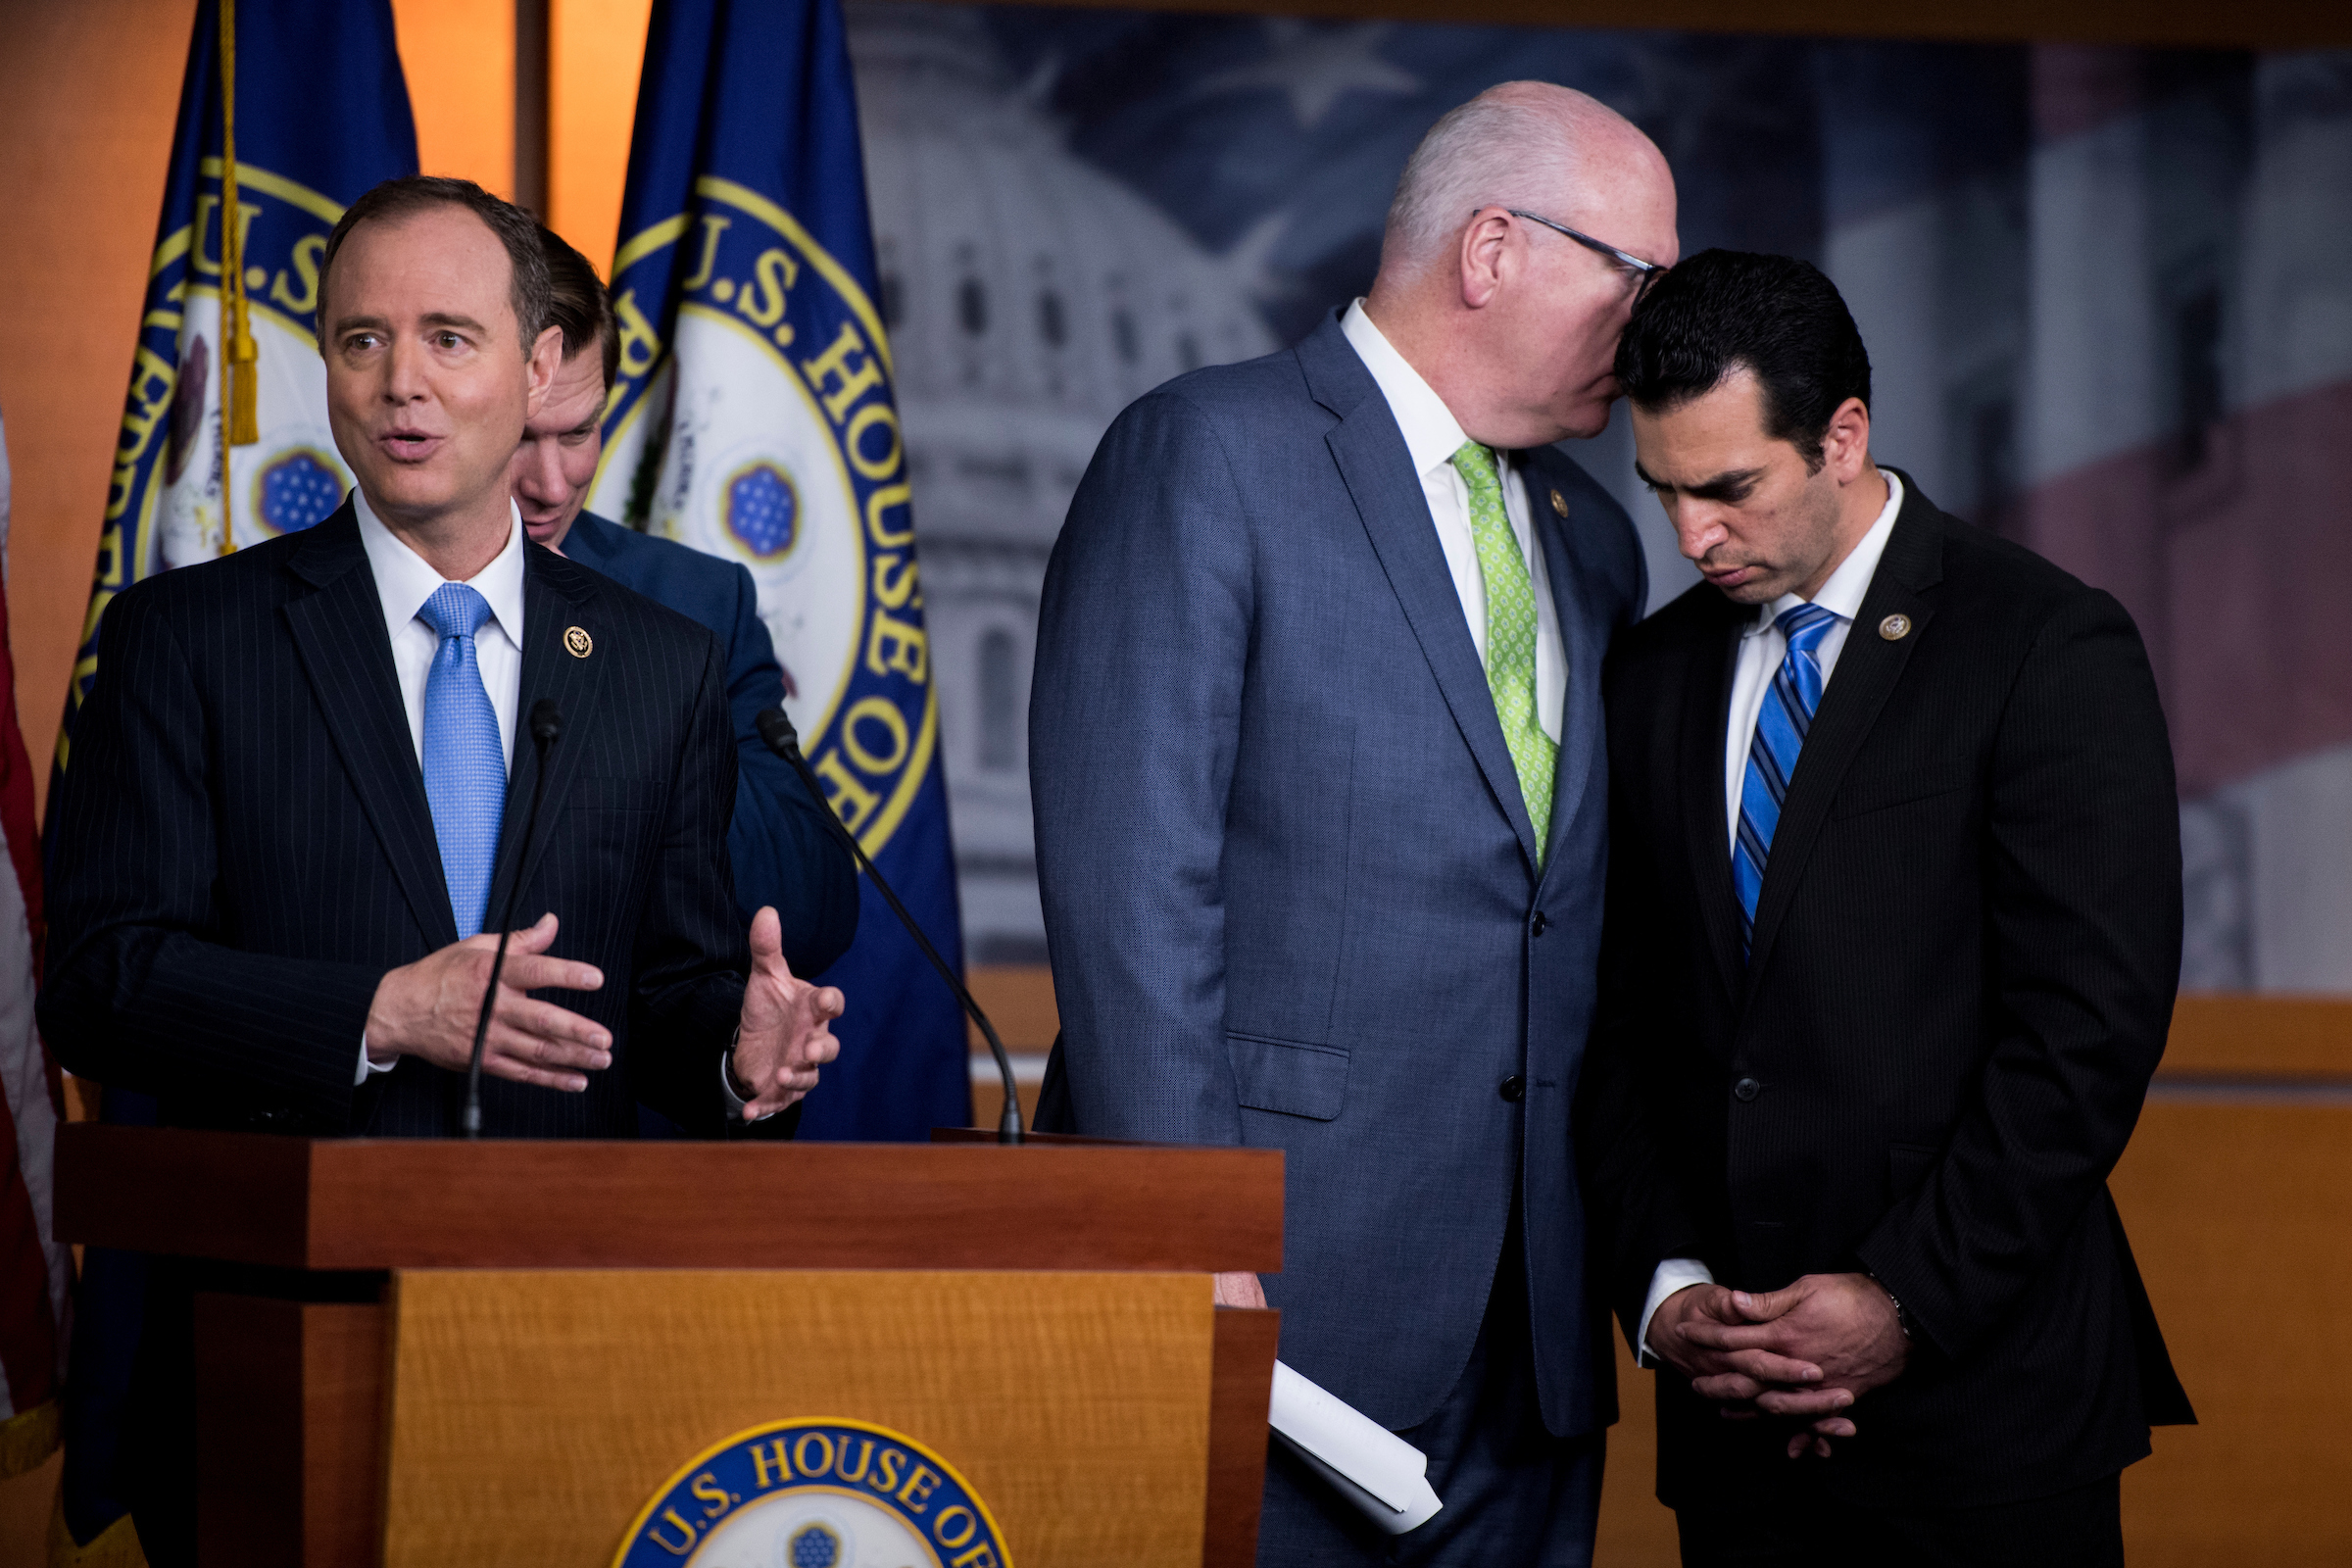 UNITED STATES - MAY 17: Chairman of the Democratic Caucus Rep. Joseph Crowley, D-N.Y., whispers to Rep. Ruben Kihuen, D-Nev., at right as House Intelligence ranking member Adam Schiff, D-Calif. speaks during the House Democrats' news conference on President Trump and Russia ties on Wednesday, May 17, 2017. (Photo By Bill Clark/CQ Roll Call)